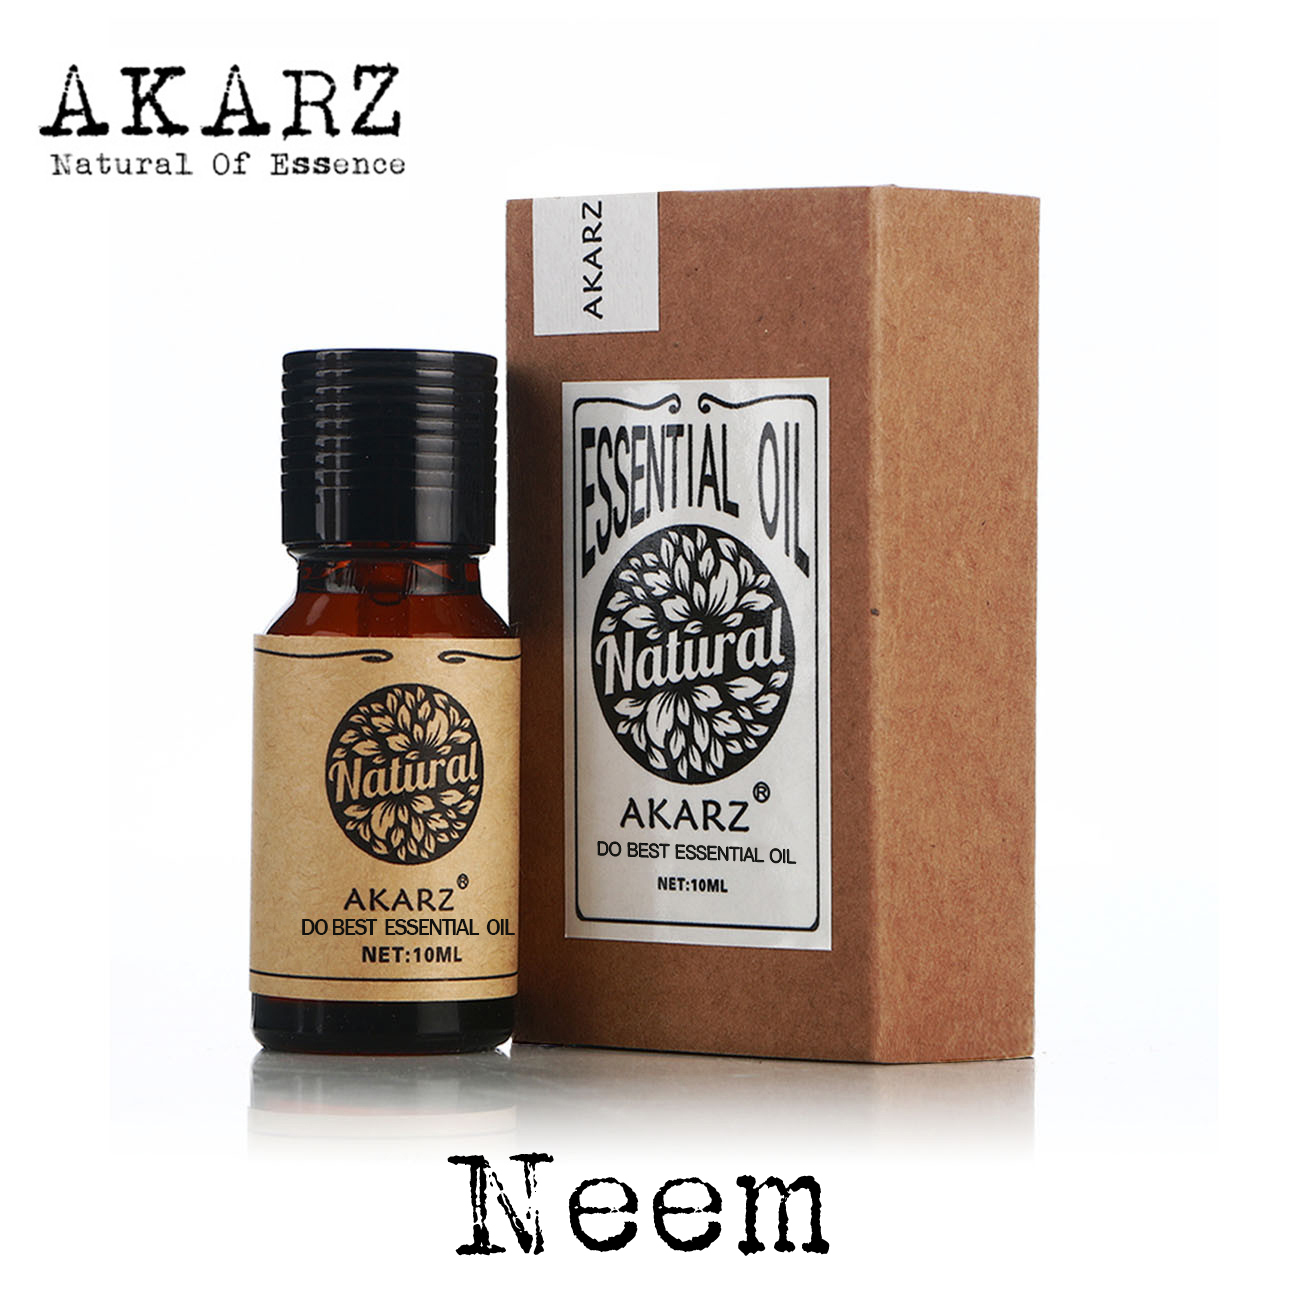 AKARZ Famous Brand Natural Neem Essential Oil Insecticidal Disinfection Inhibit The Growth Of Insect Pests Neem Oil